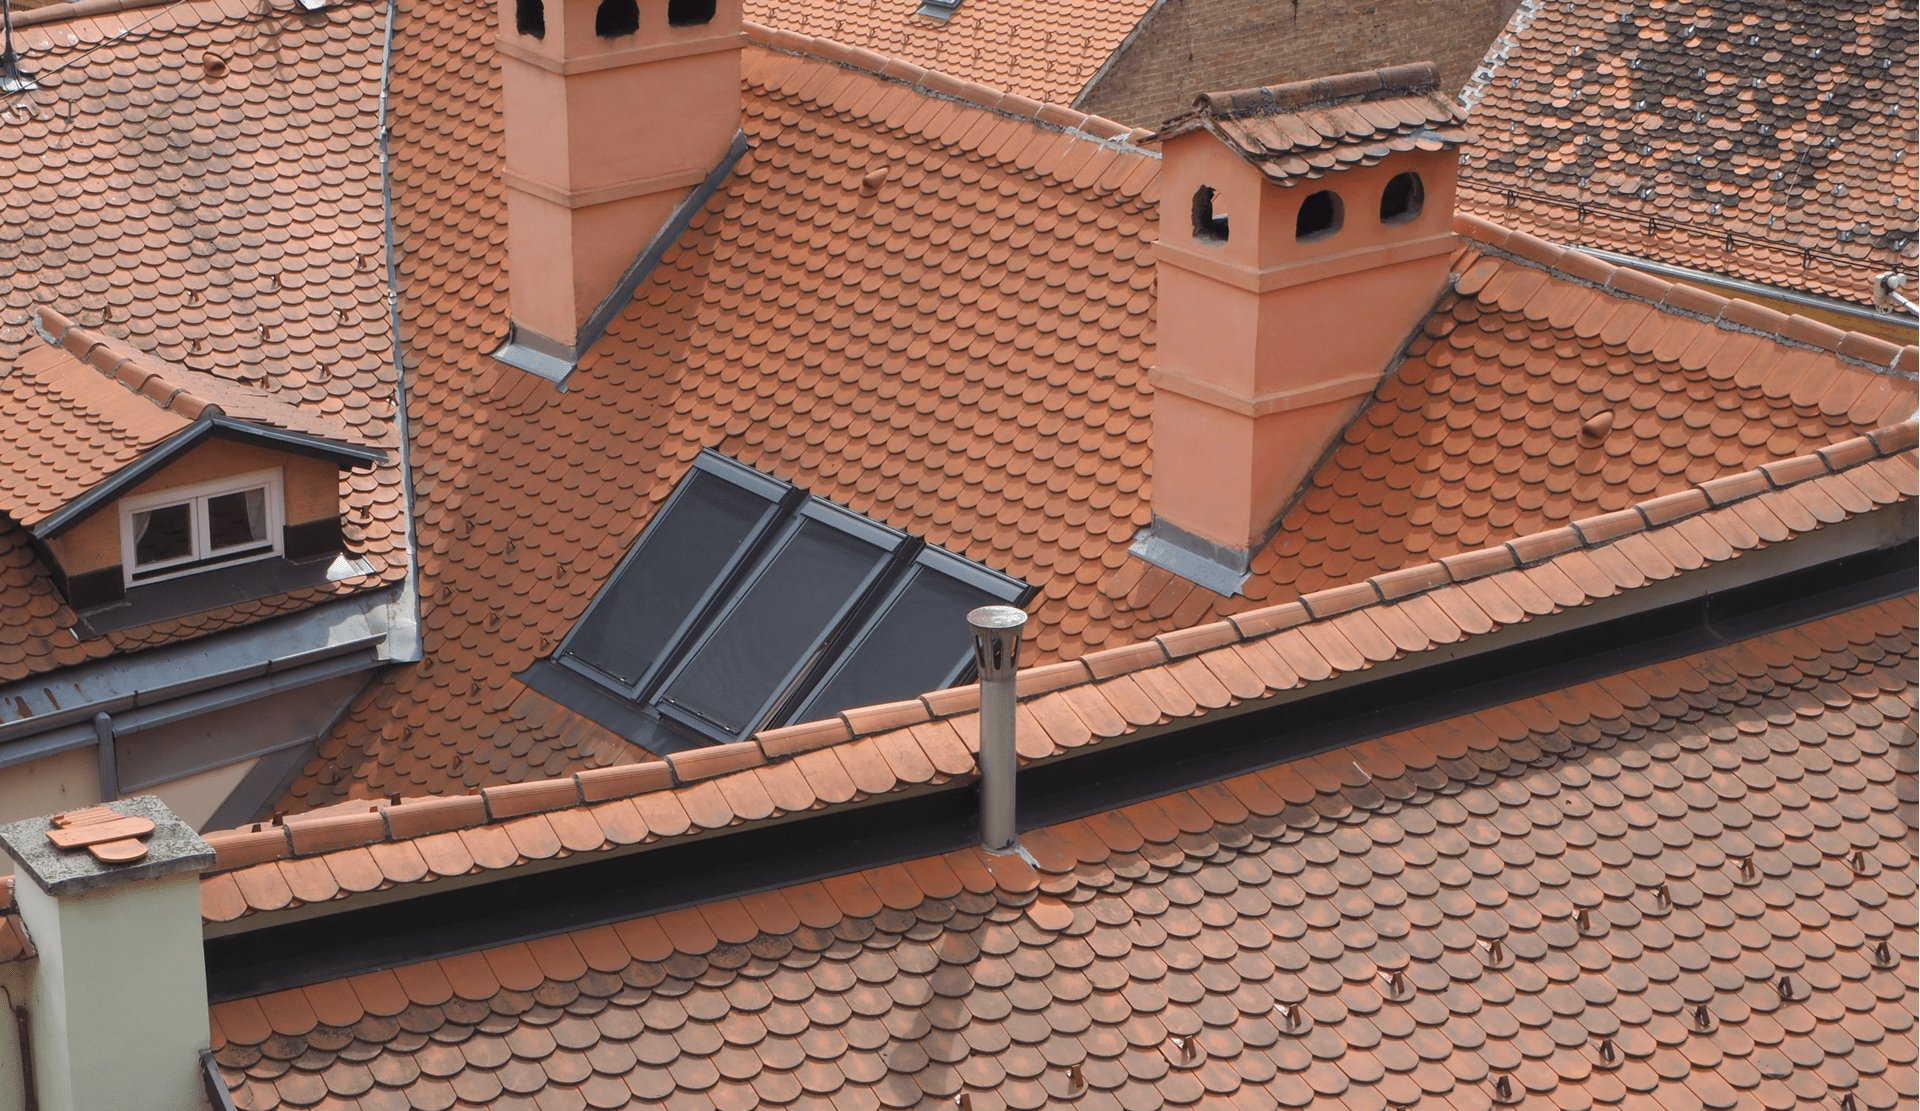 Why Would You Want To Replace Your Roof With Tile?